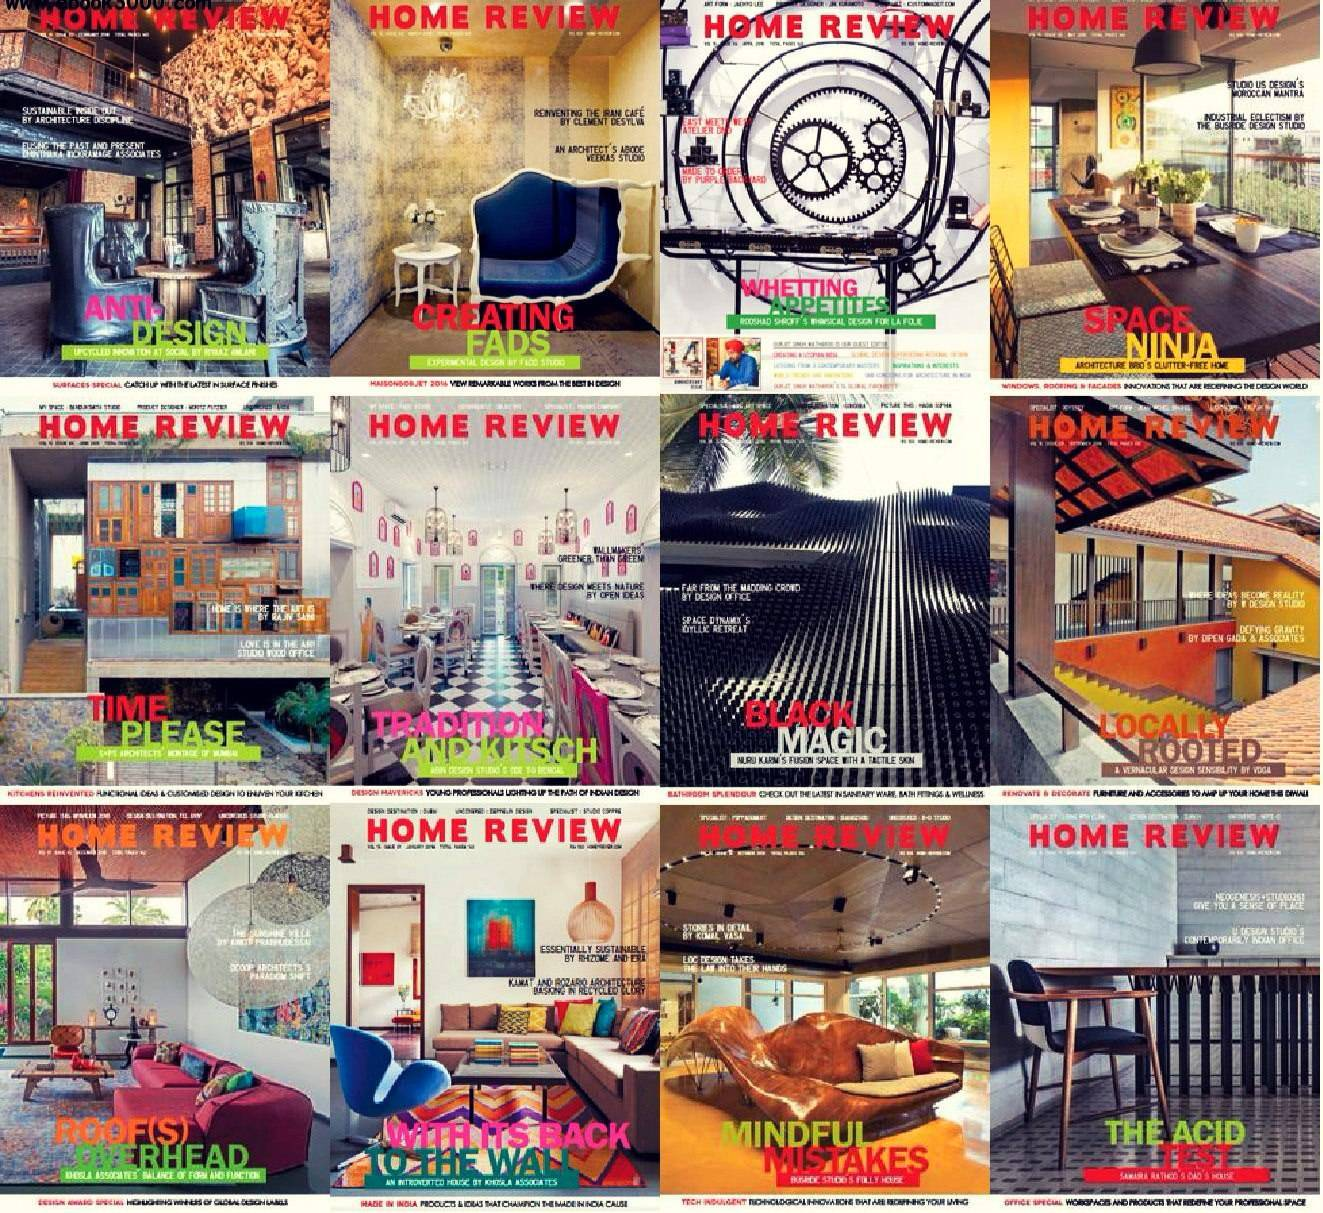 Home Review – 2016 Full Year Issues Collection